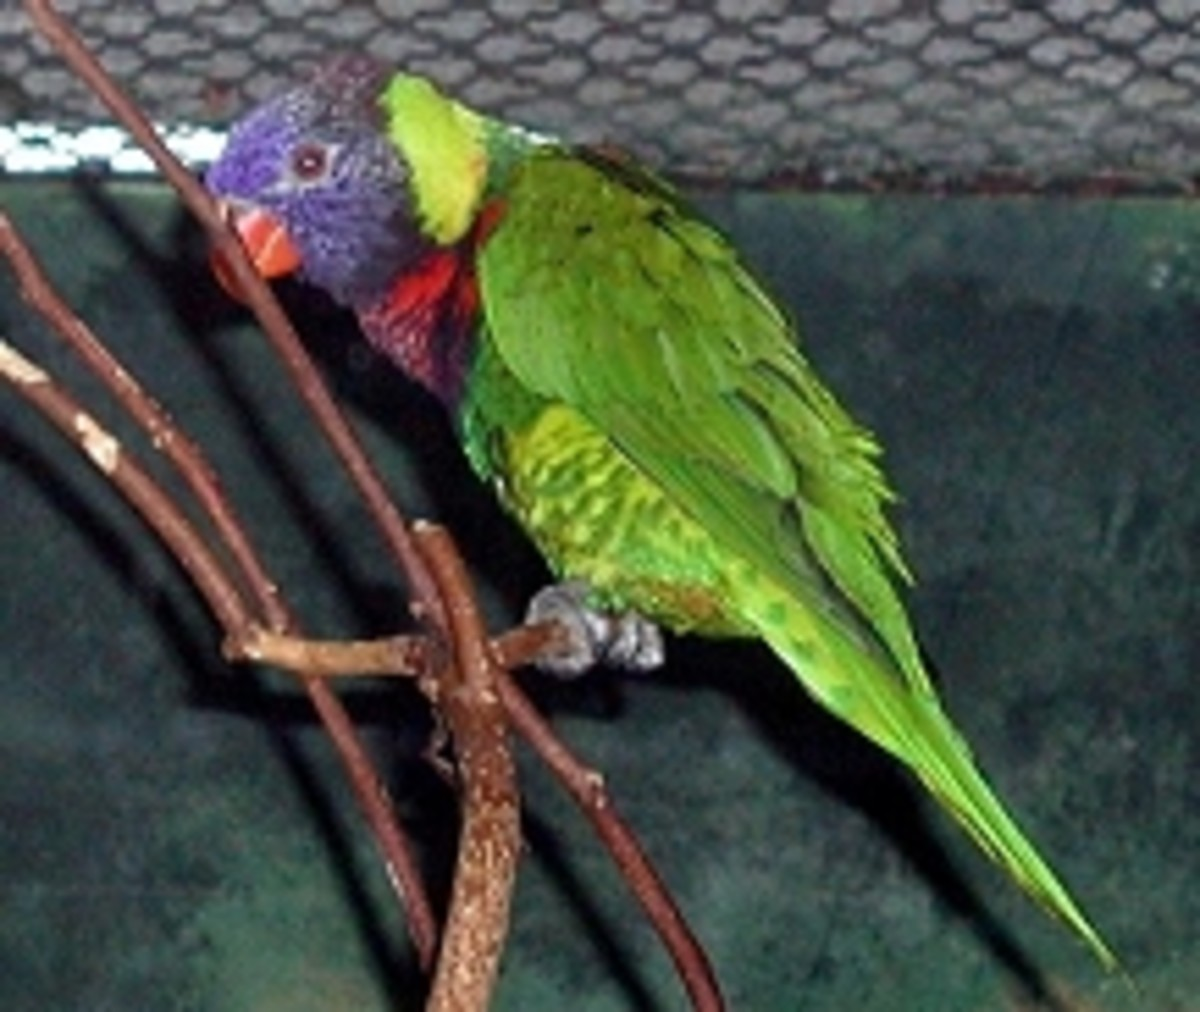 Asia and Australia area Rainbow Lorikeet from meskerparkzoo.com